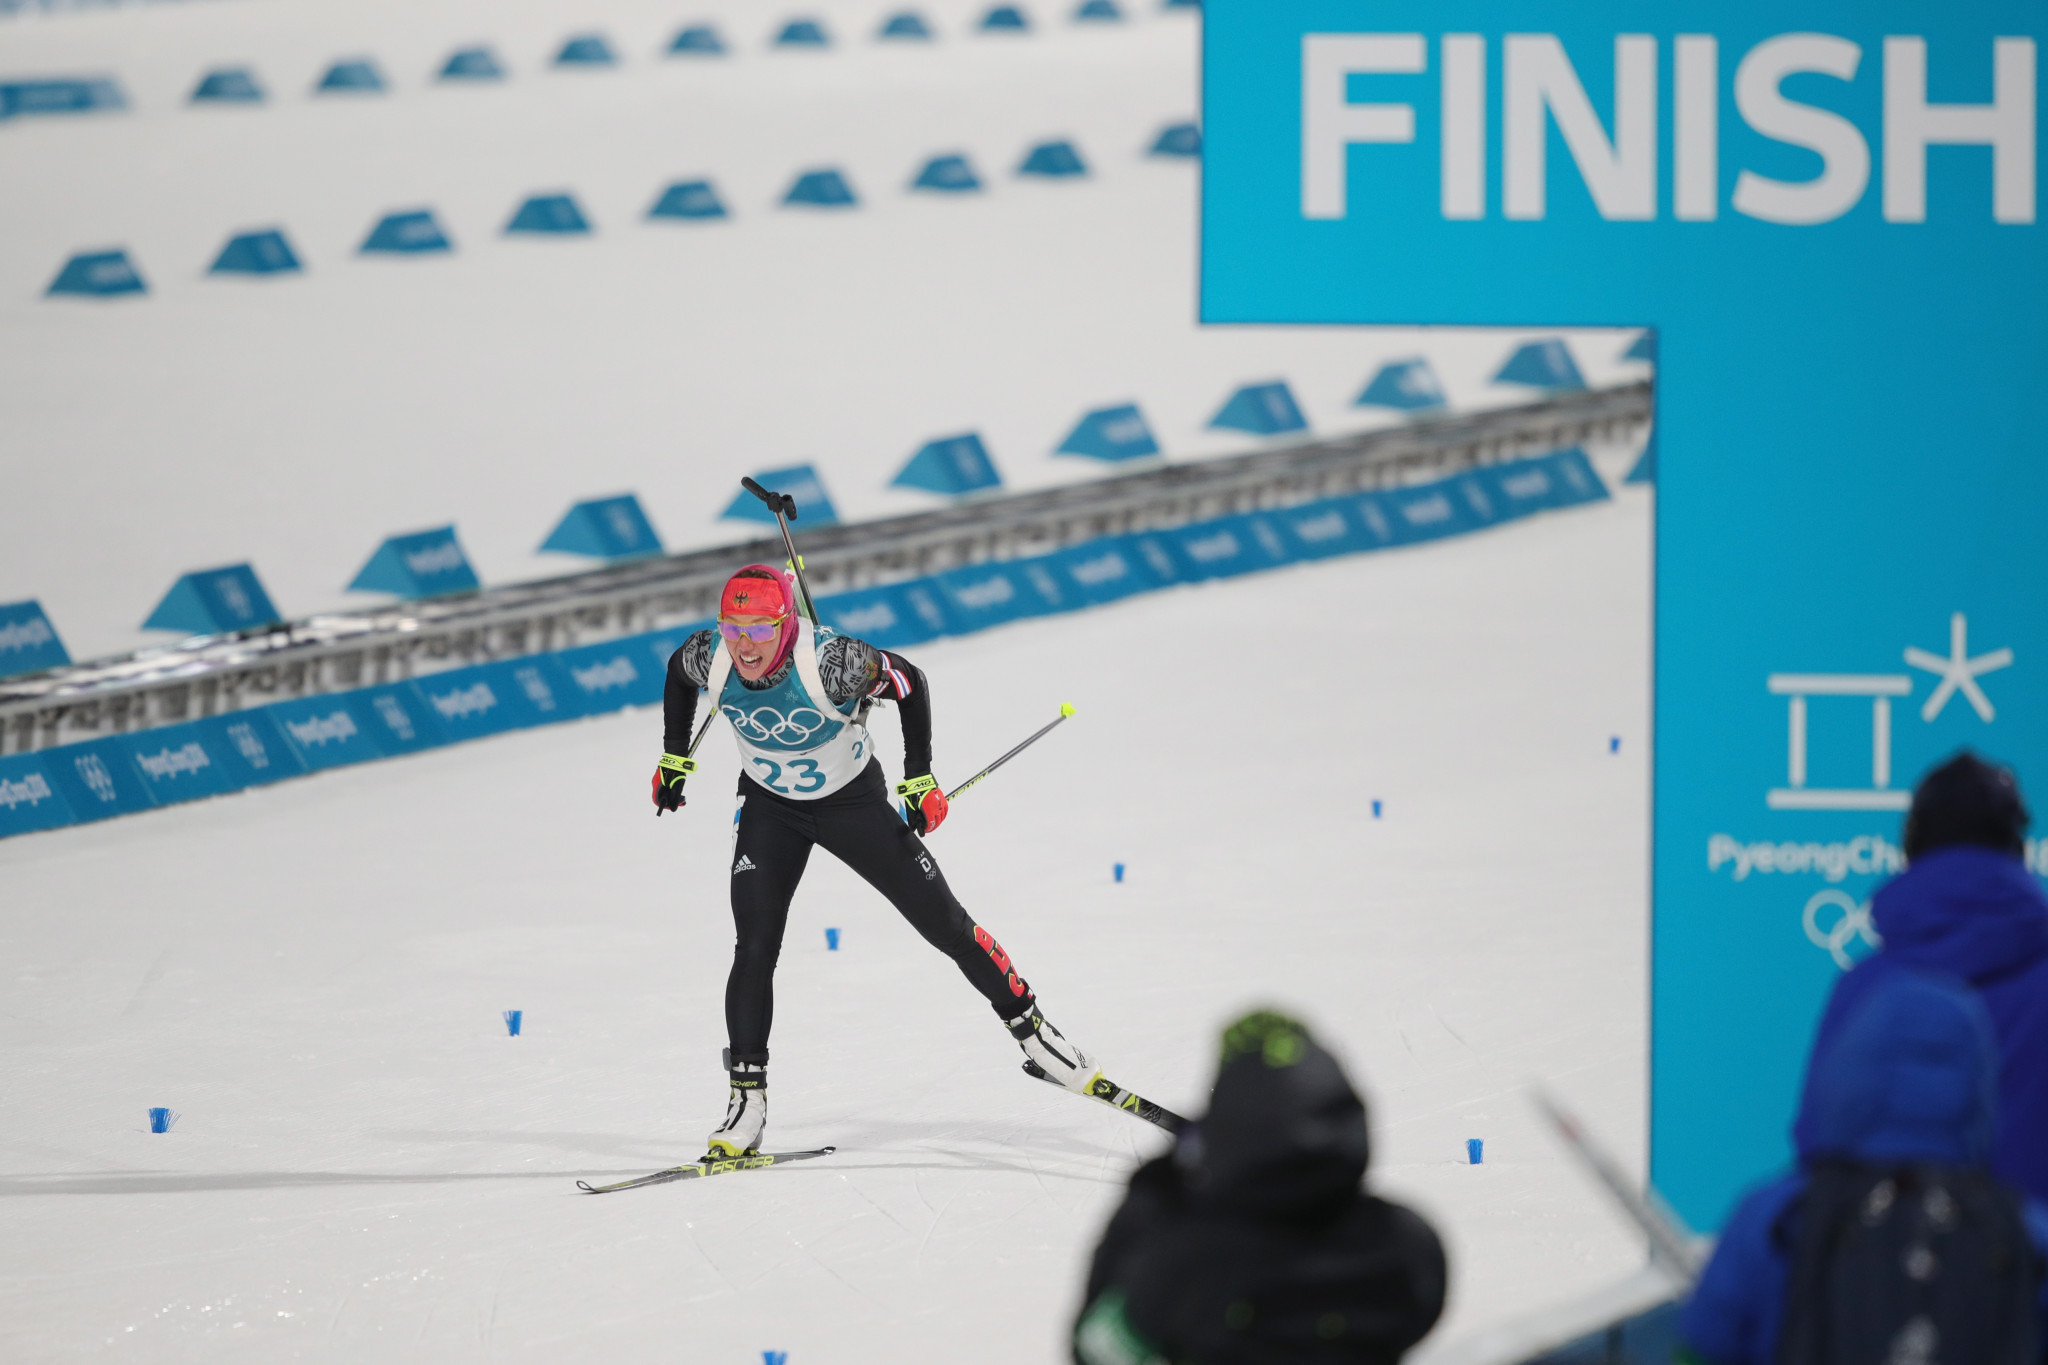 Dominant Dahlmeier secures first Winter Olympic title with sprint success at Pyeongchang 2018